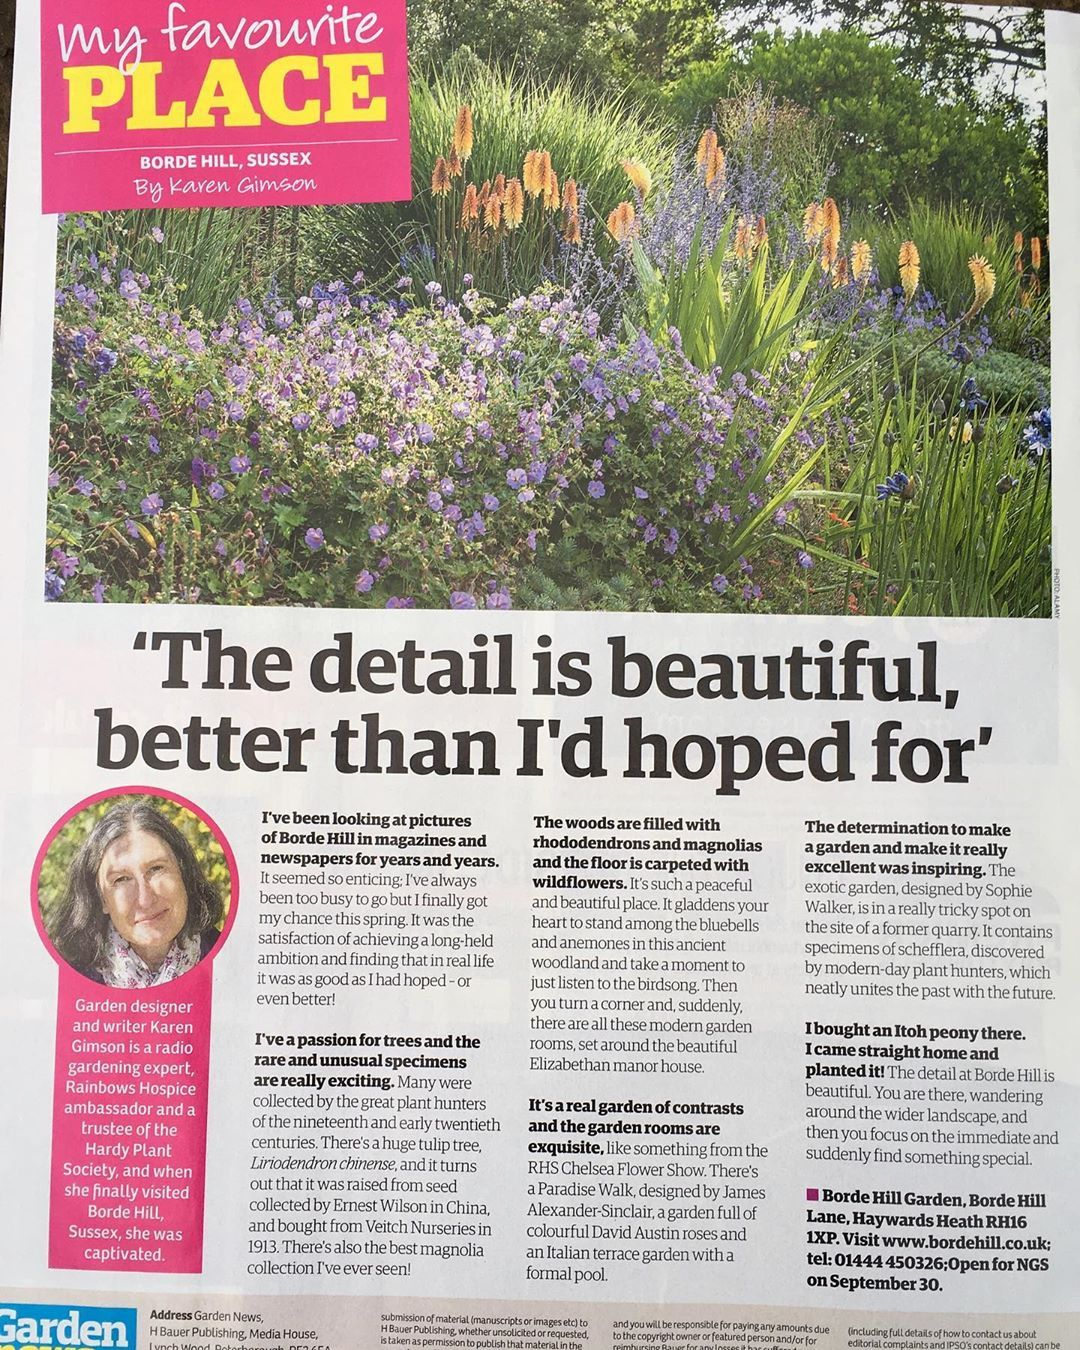 Lovely To See My Favourite Place Bordehillgarden Featured In Gardennewsmagazine Happy To Be Asked To Beautiful Gardens Garden Inspiration Favorite Places